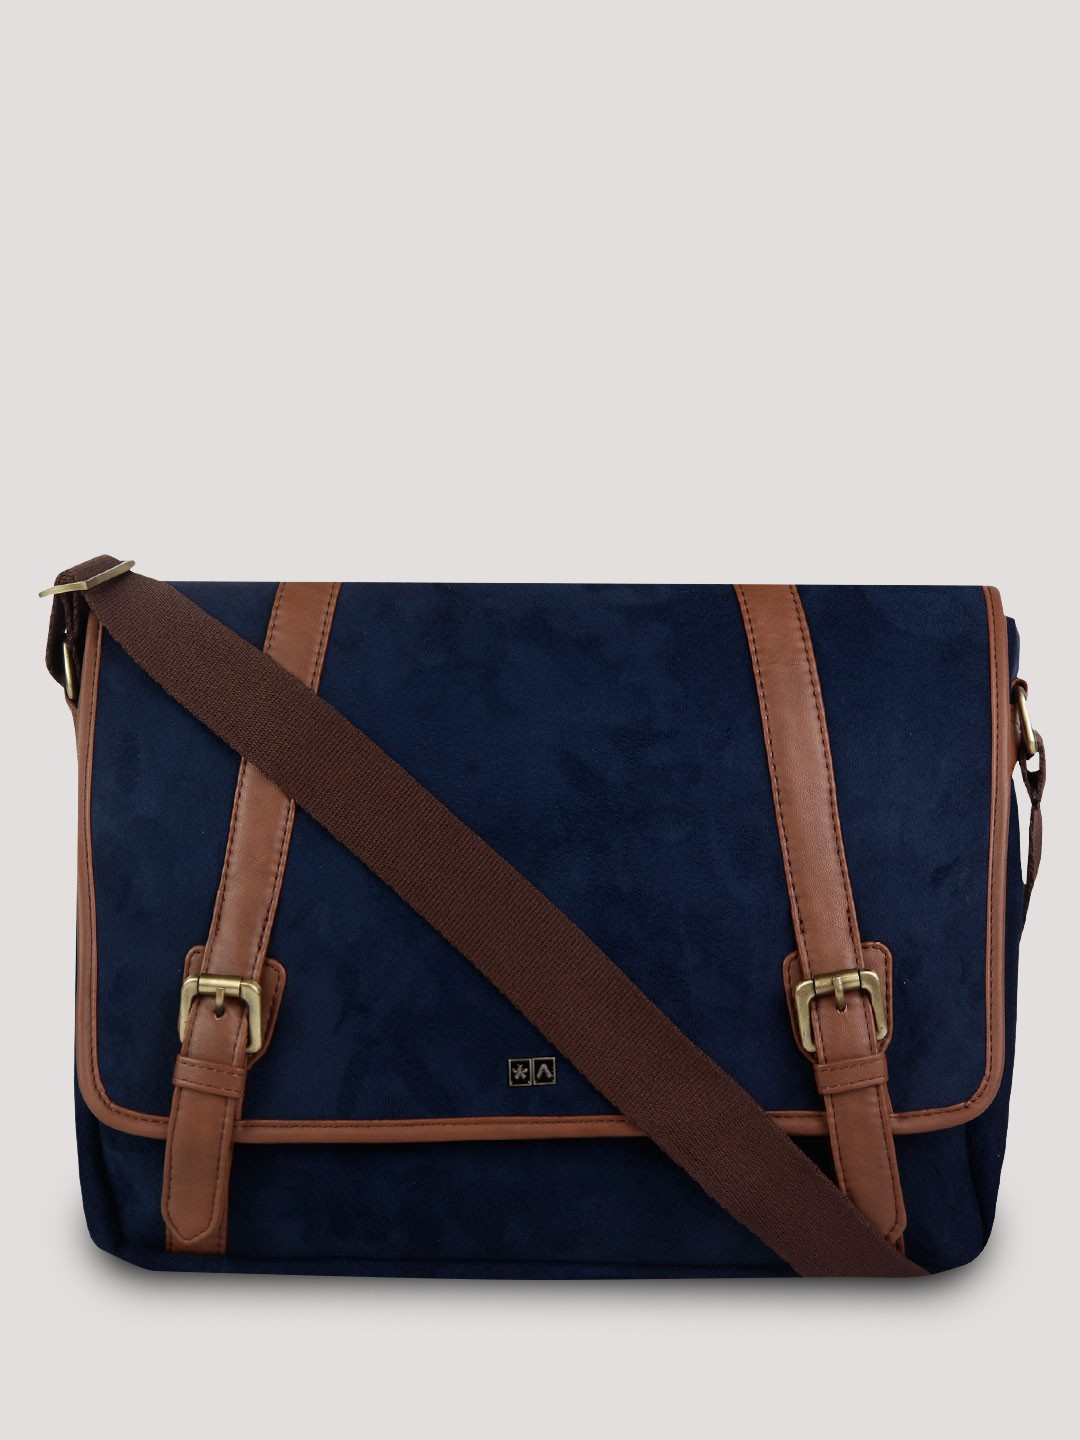 Laptop Bags - Buy Online Laptop Bags for Men in India at Koovs